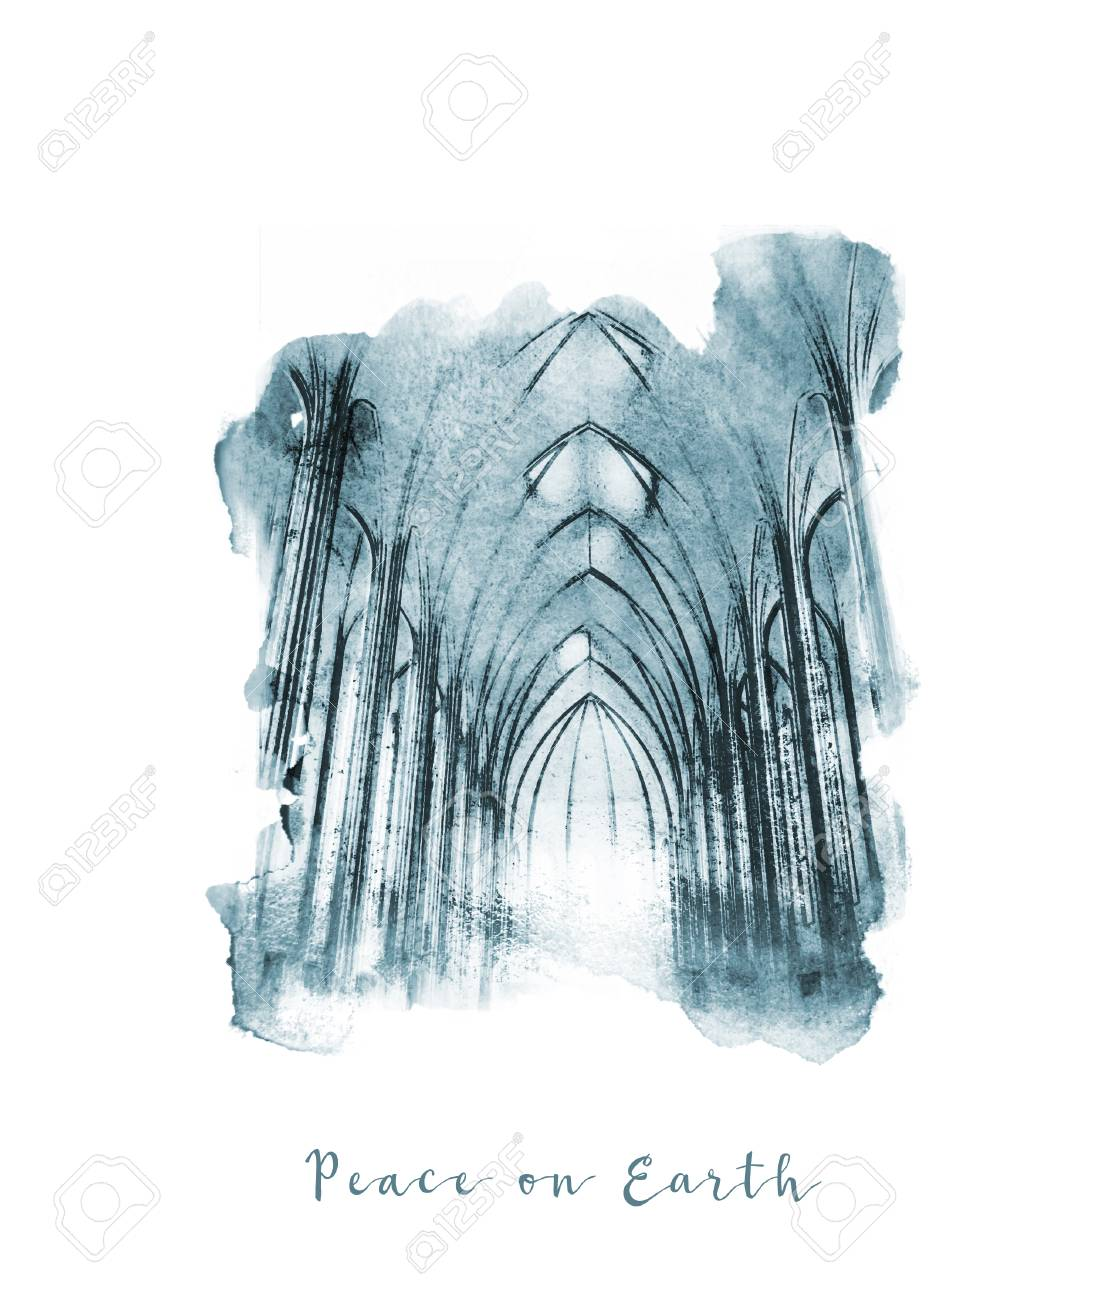 Christmas Card With The Words Peace On Earth, With The Watercolor ...